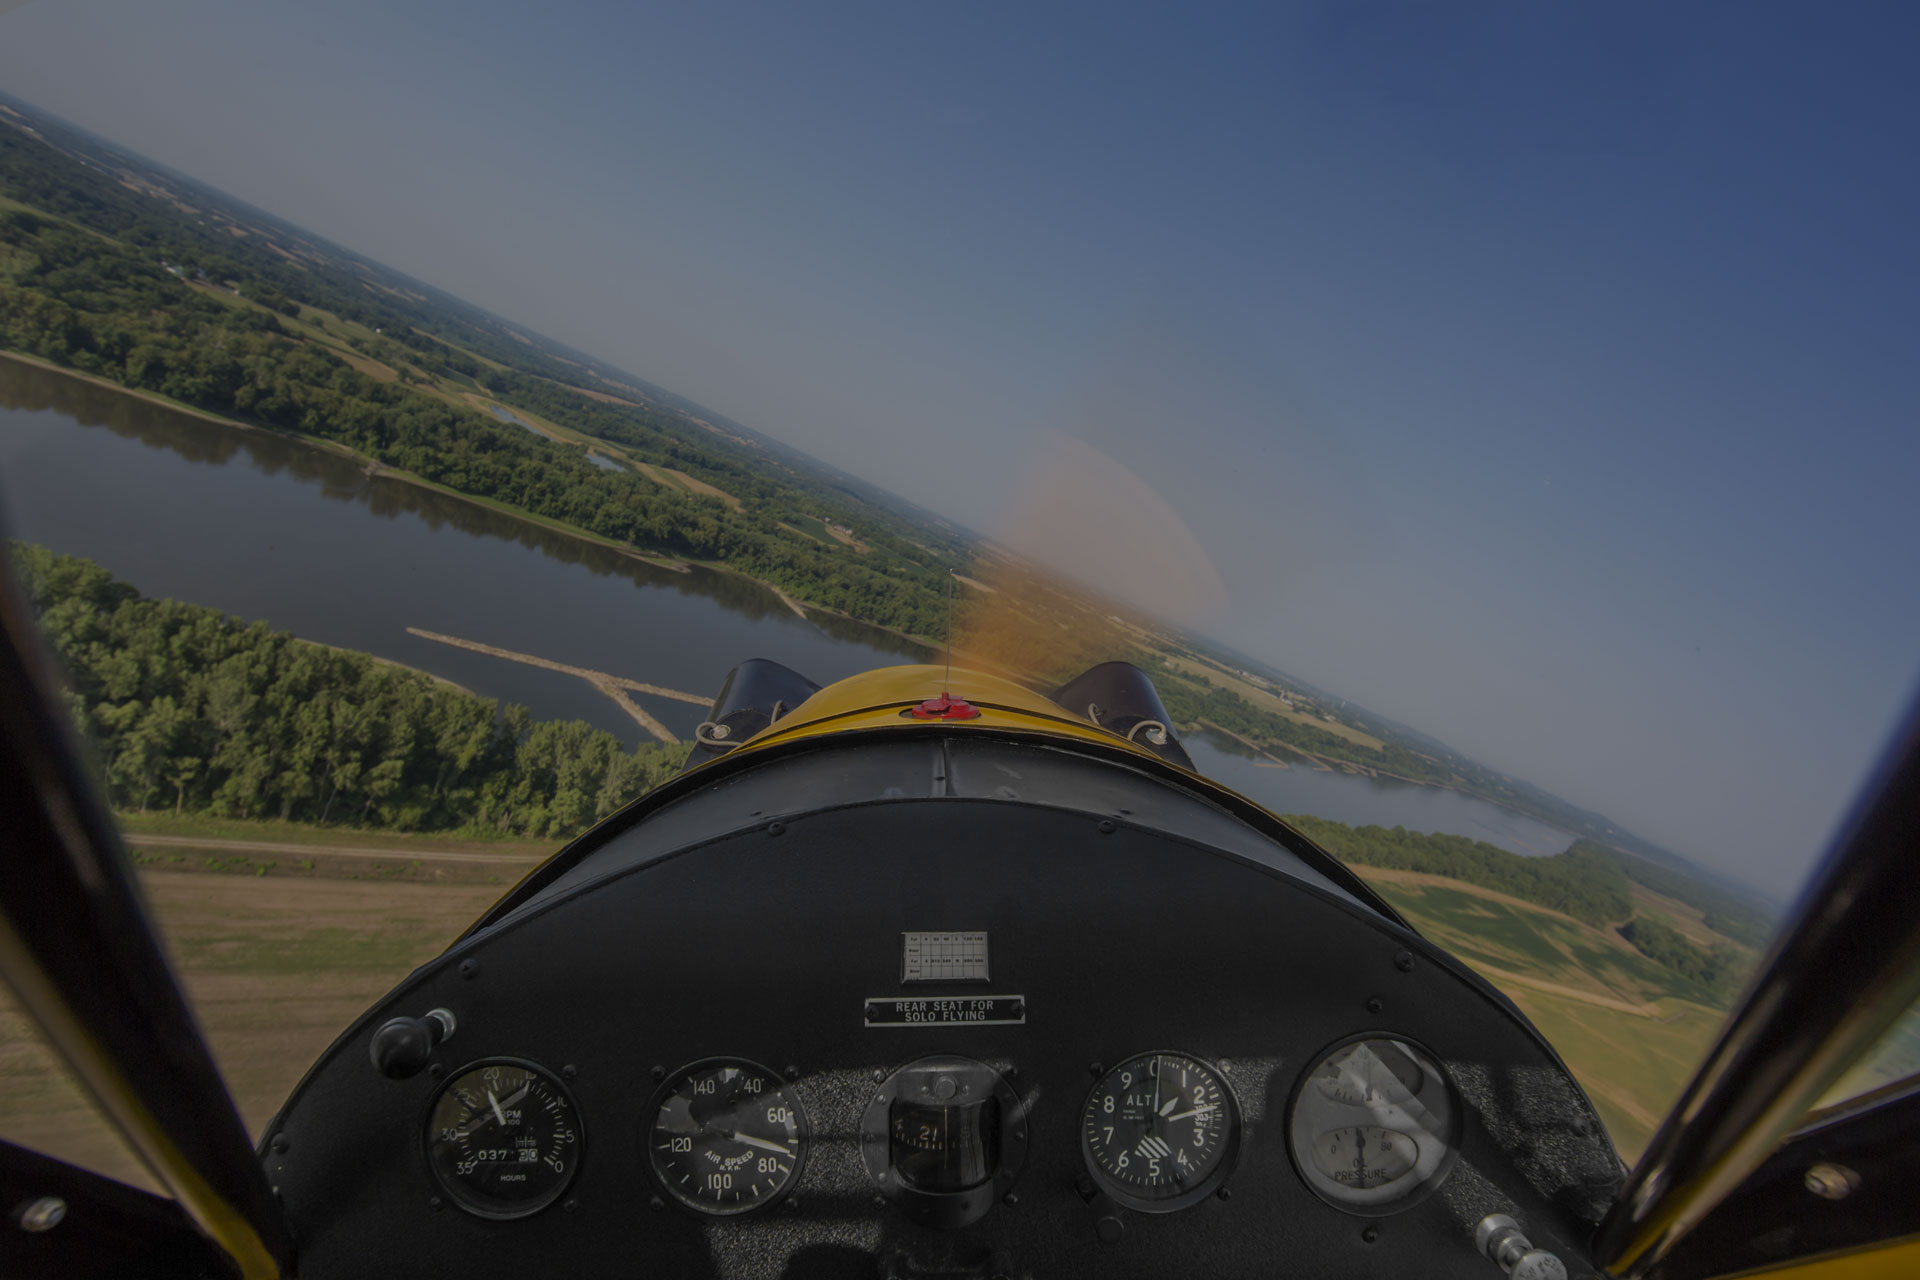 Cockpit view from small vintage aircraft